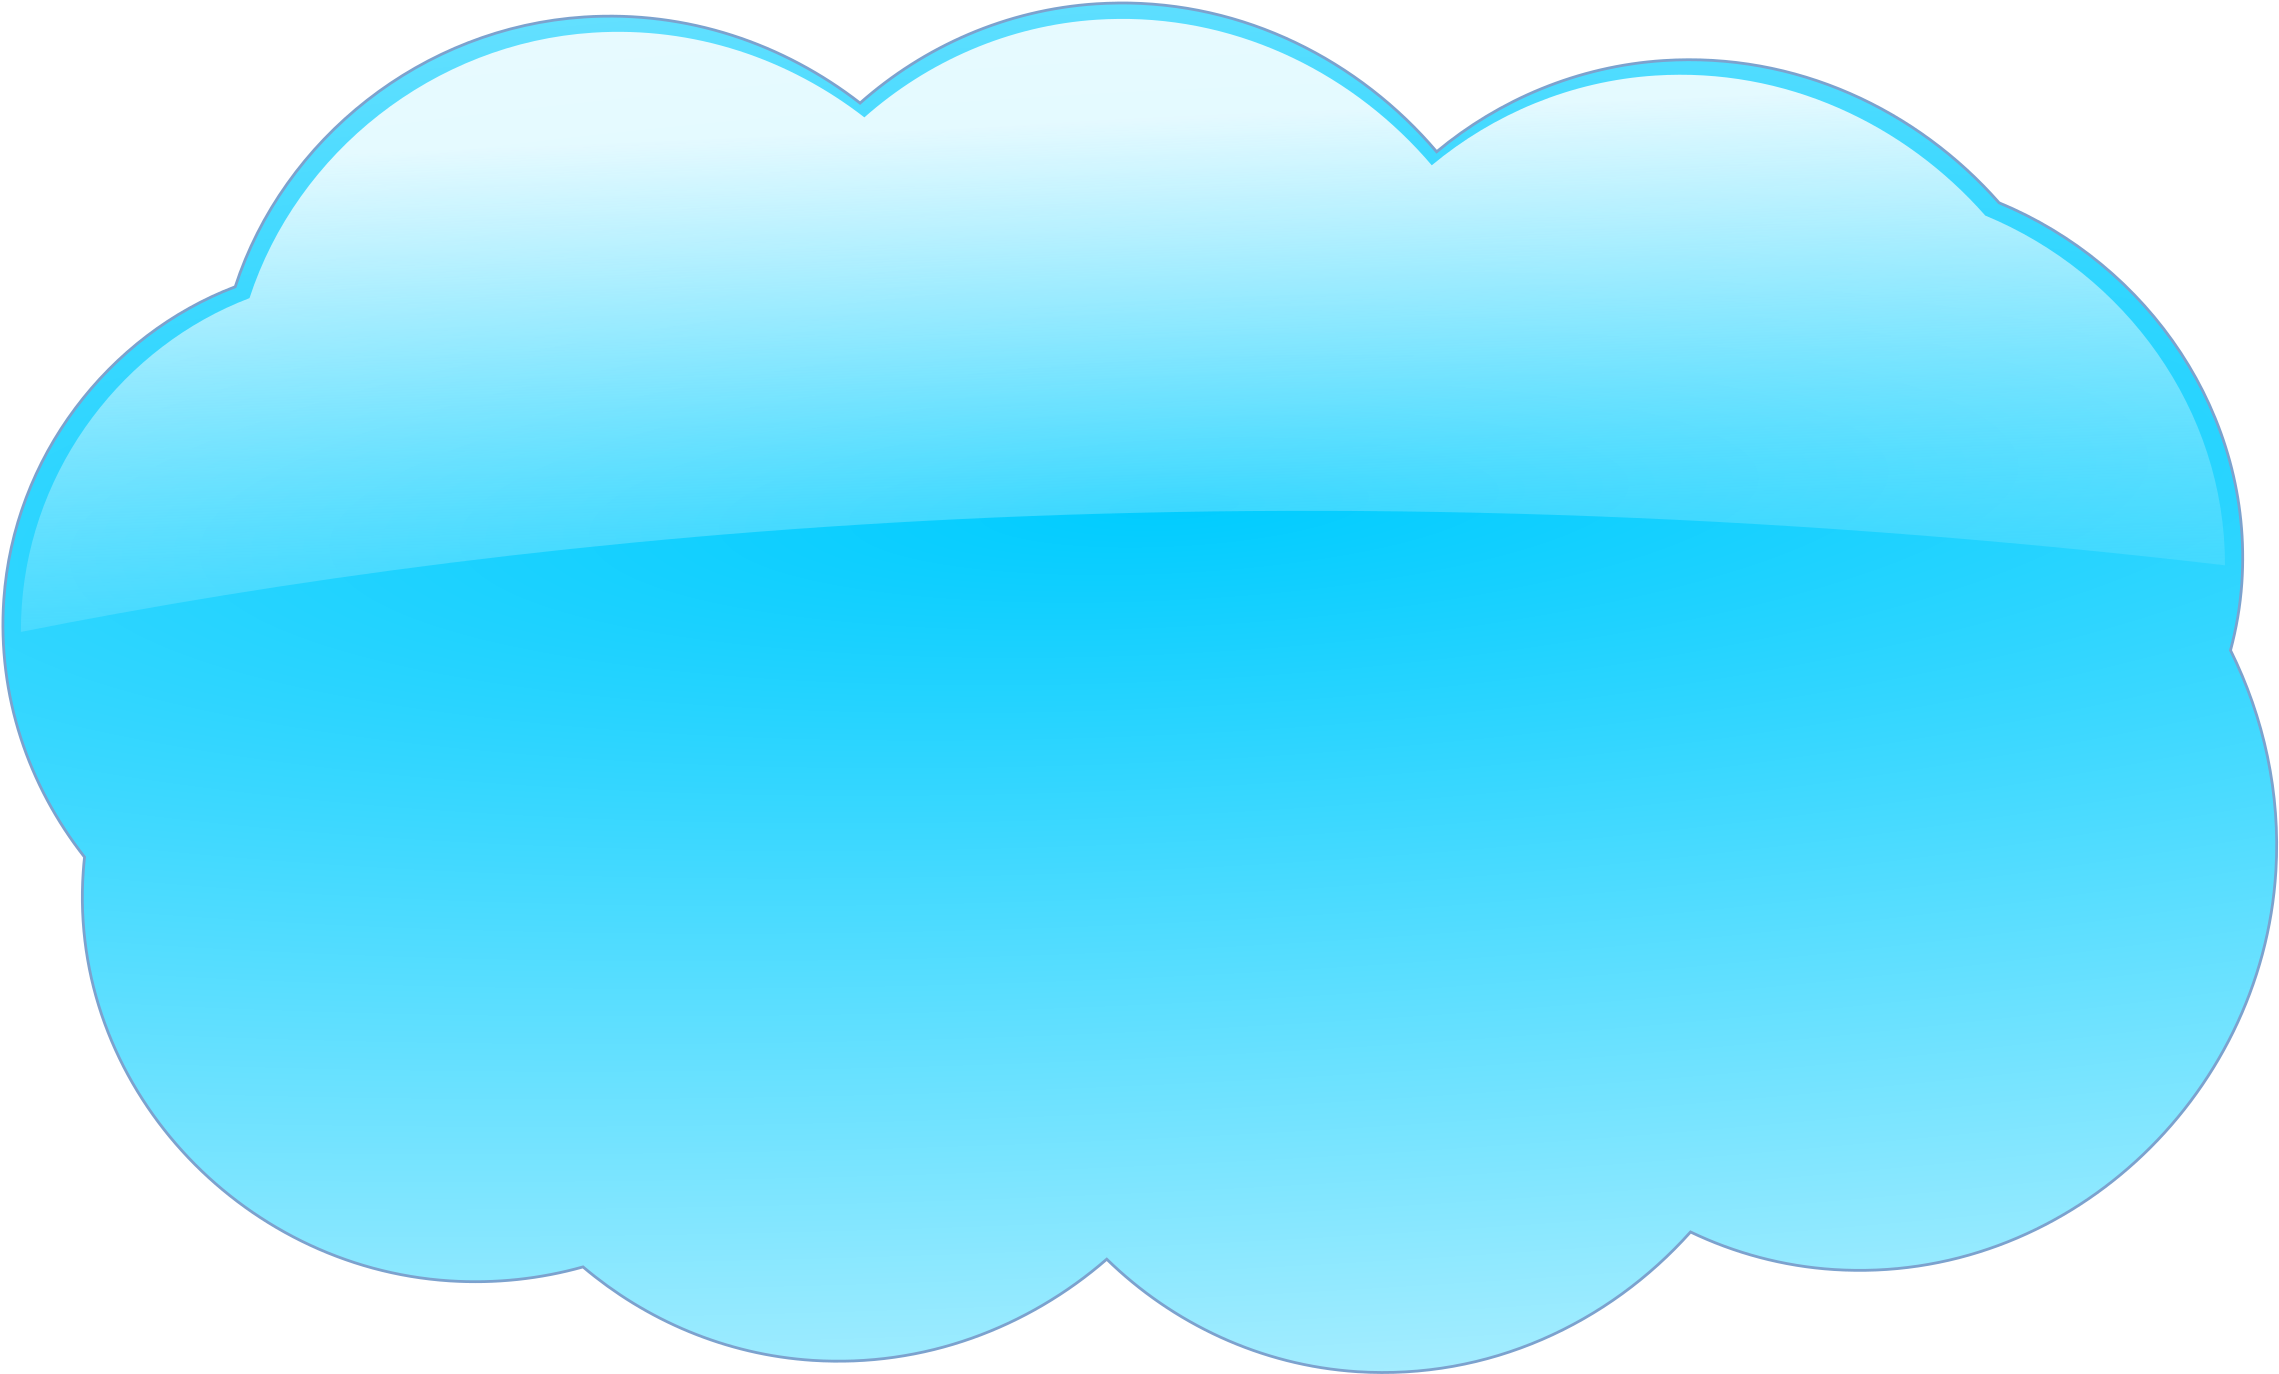 Sky blue clipart png royalty free download HD Cloud Clip Clipartionm - Sky Blue Cloud Clipart ... png royalty free download